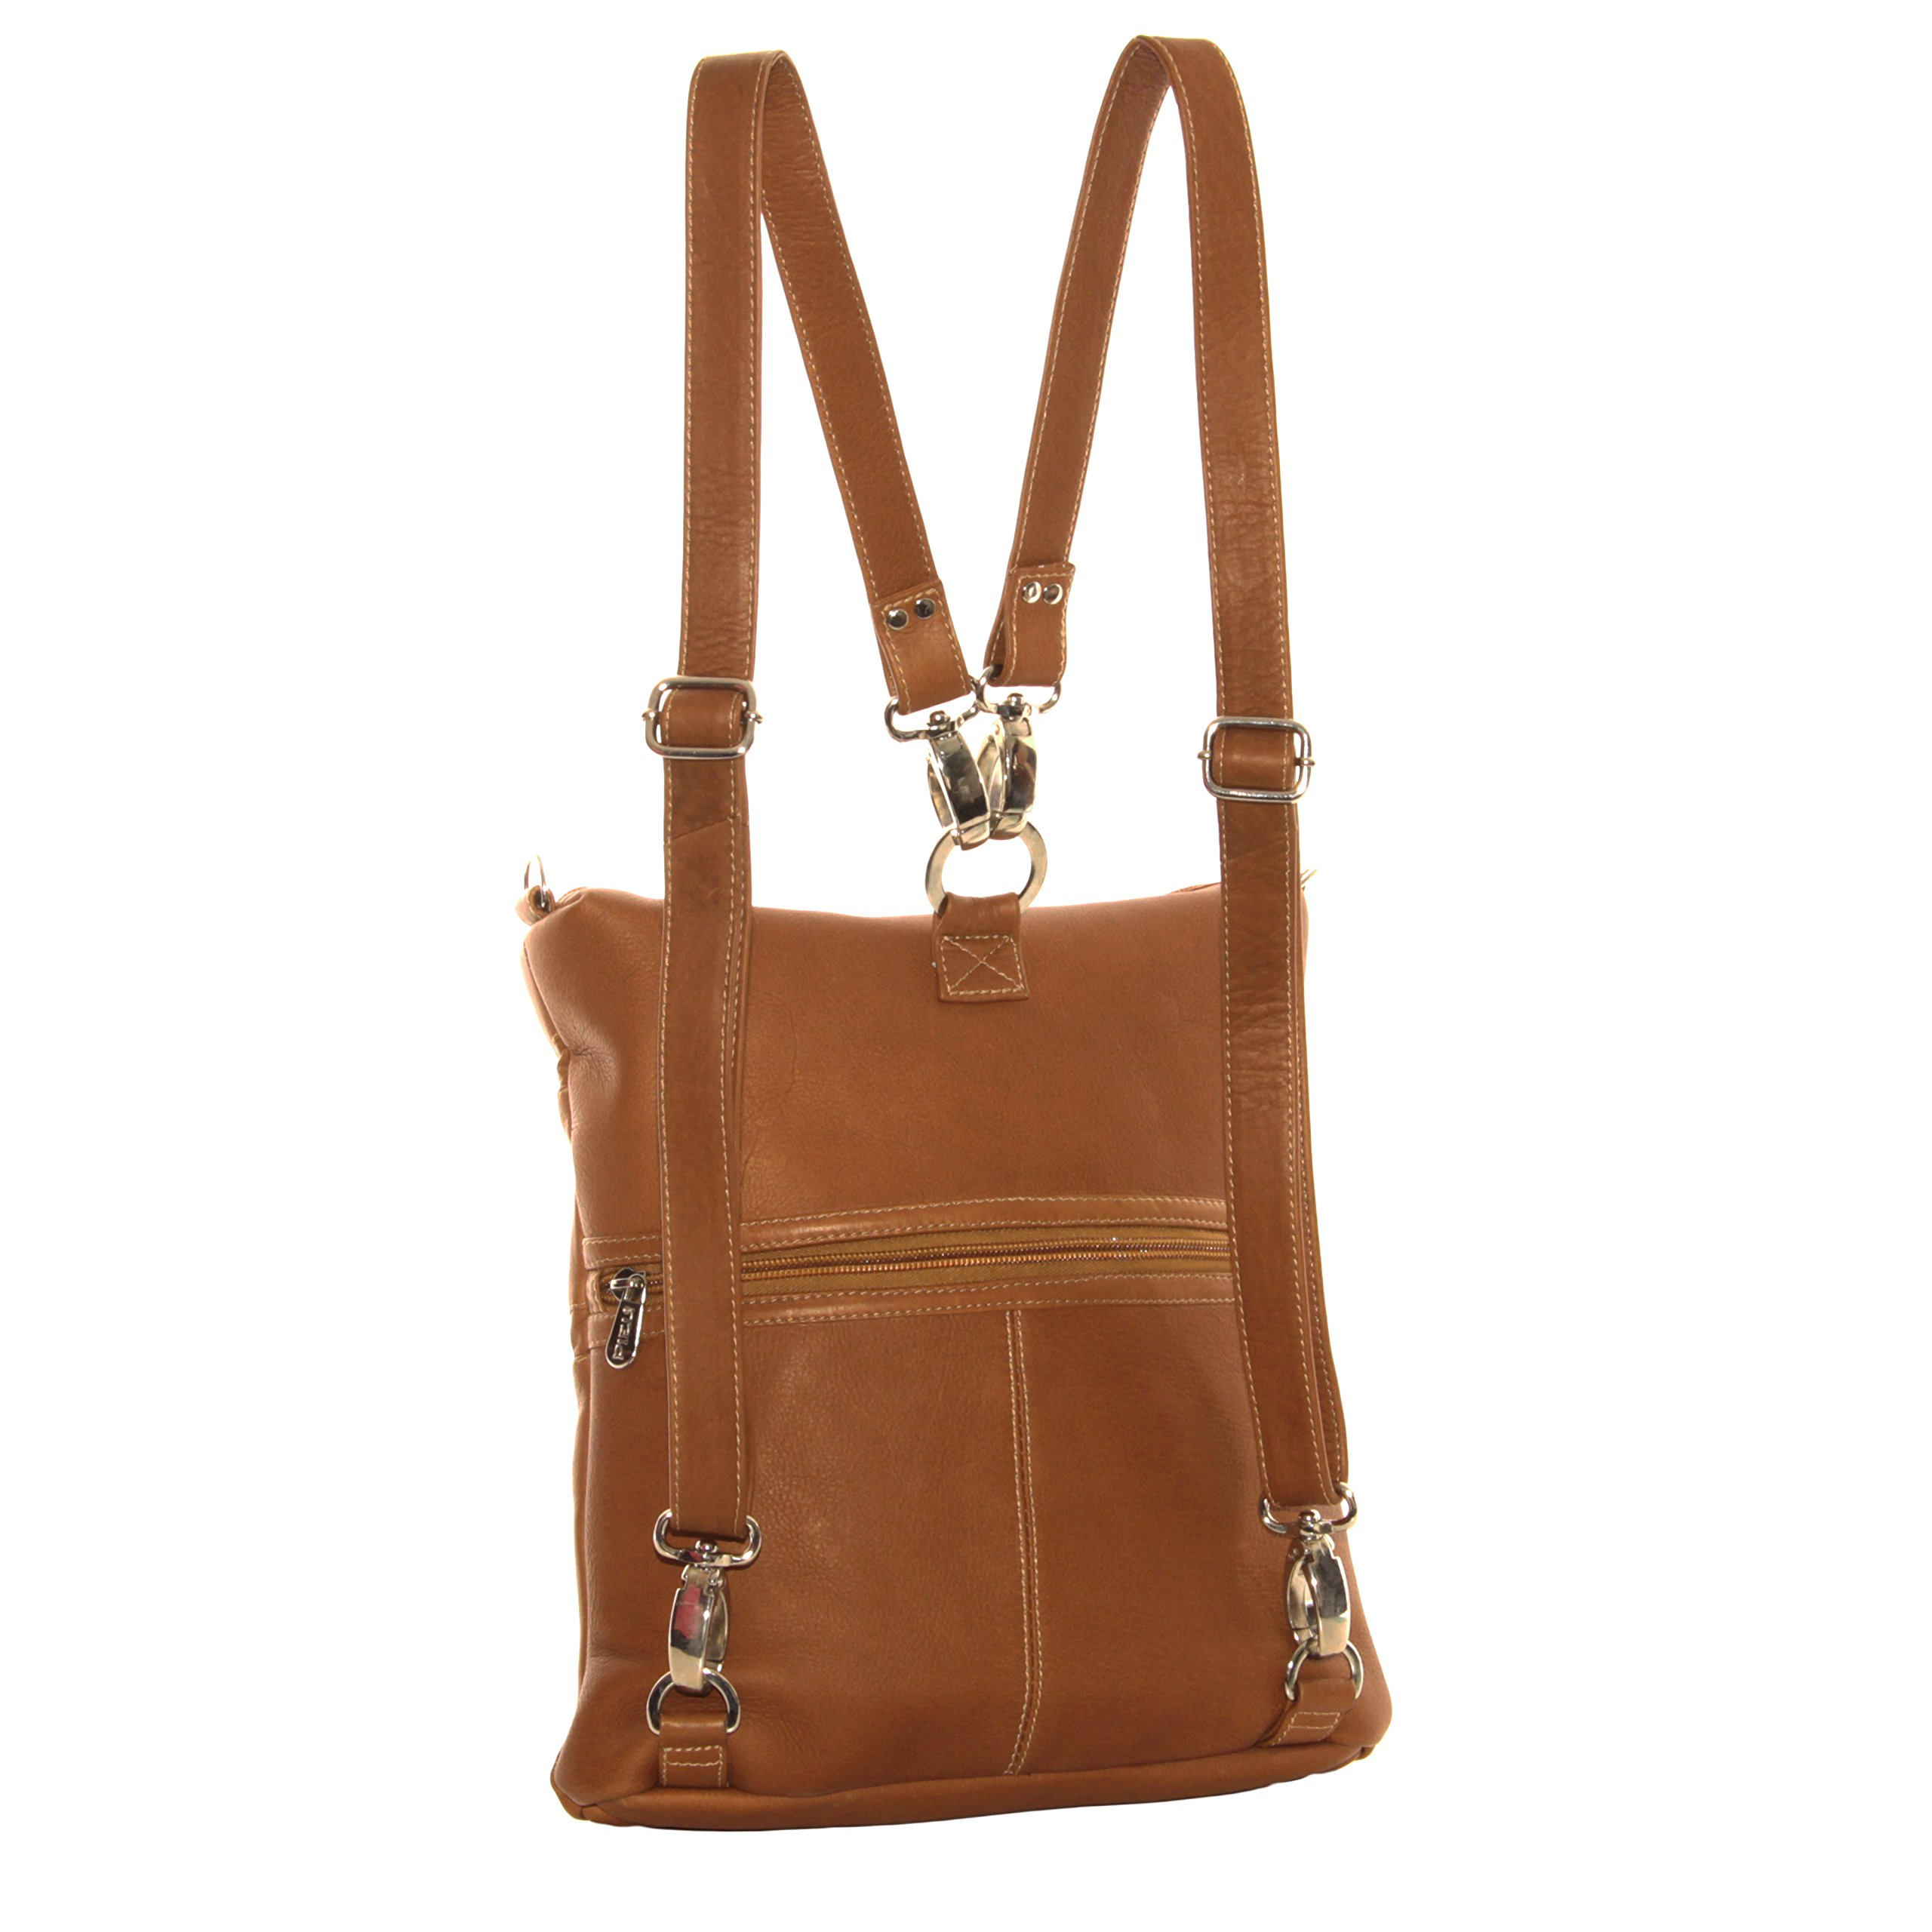 Piel Leather Convertible Multi-Pocket Shoulder Bag Backpack, Saddle, One Size